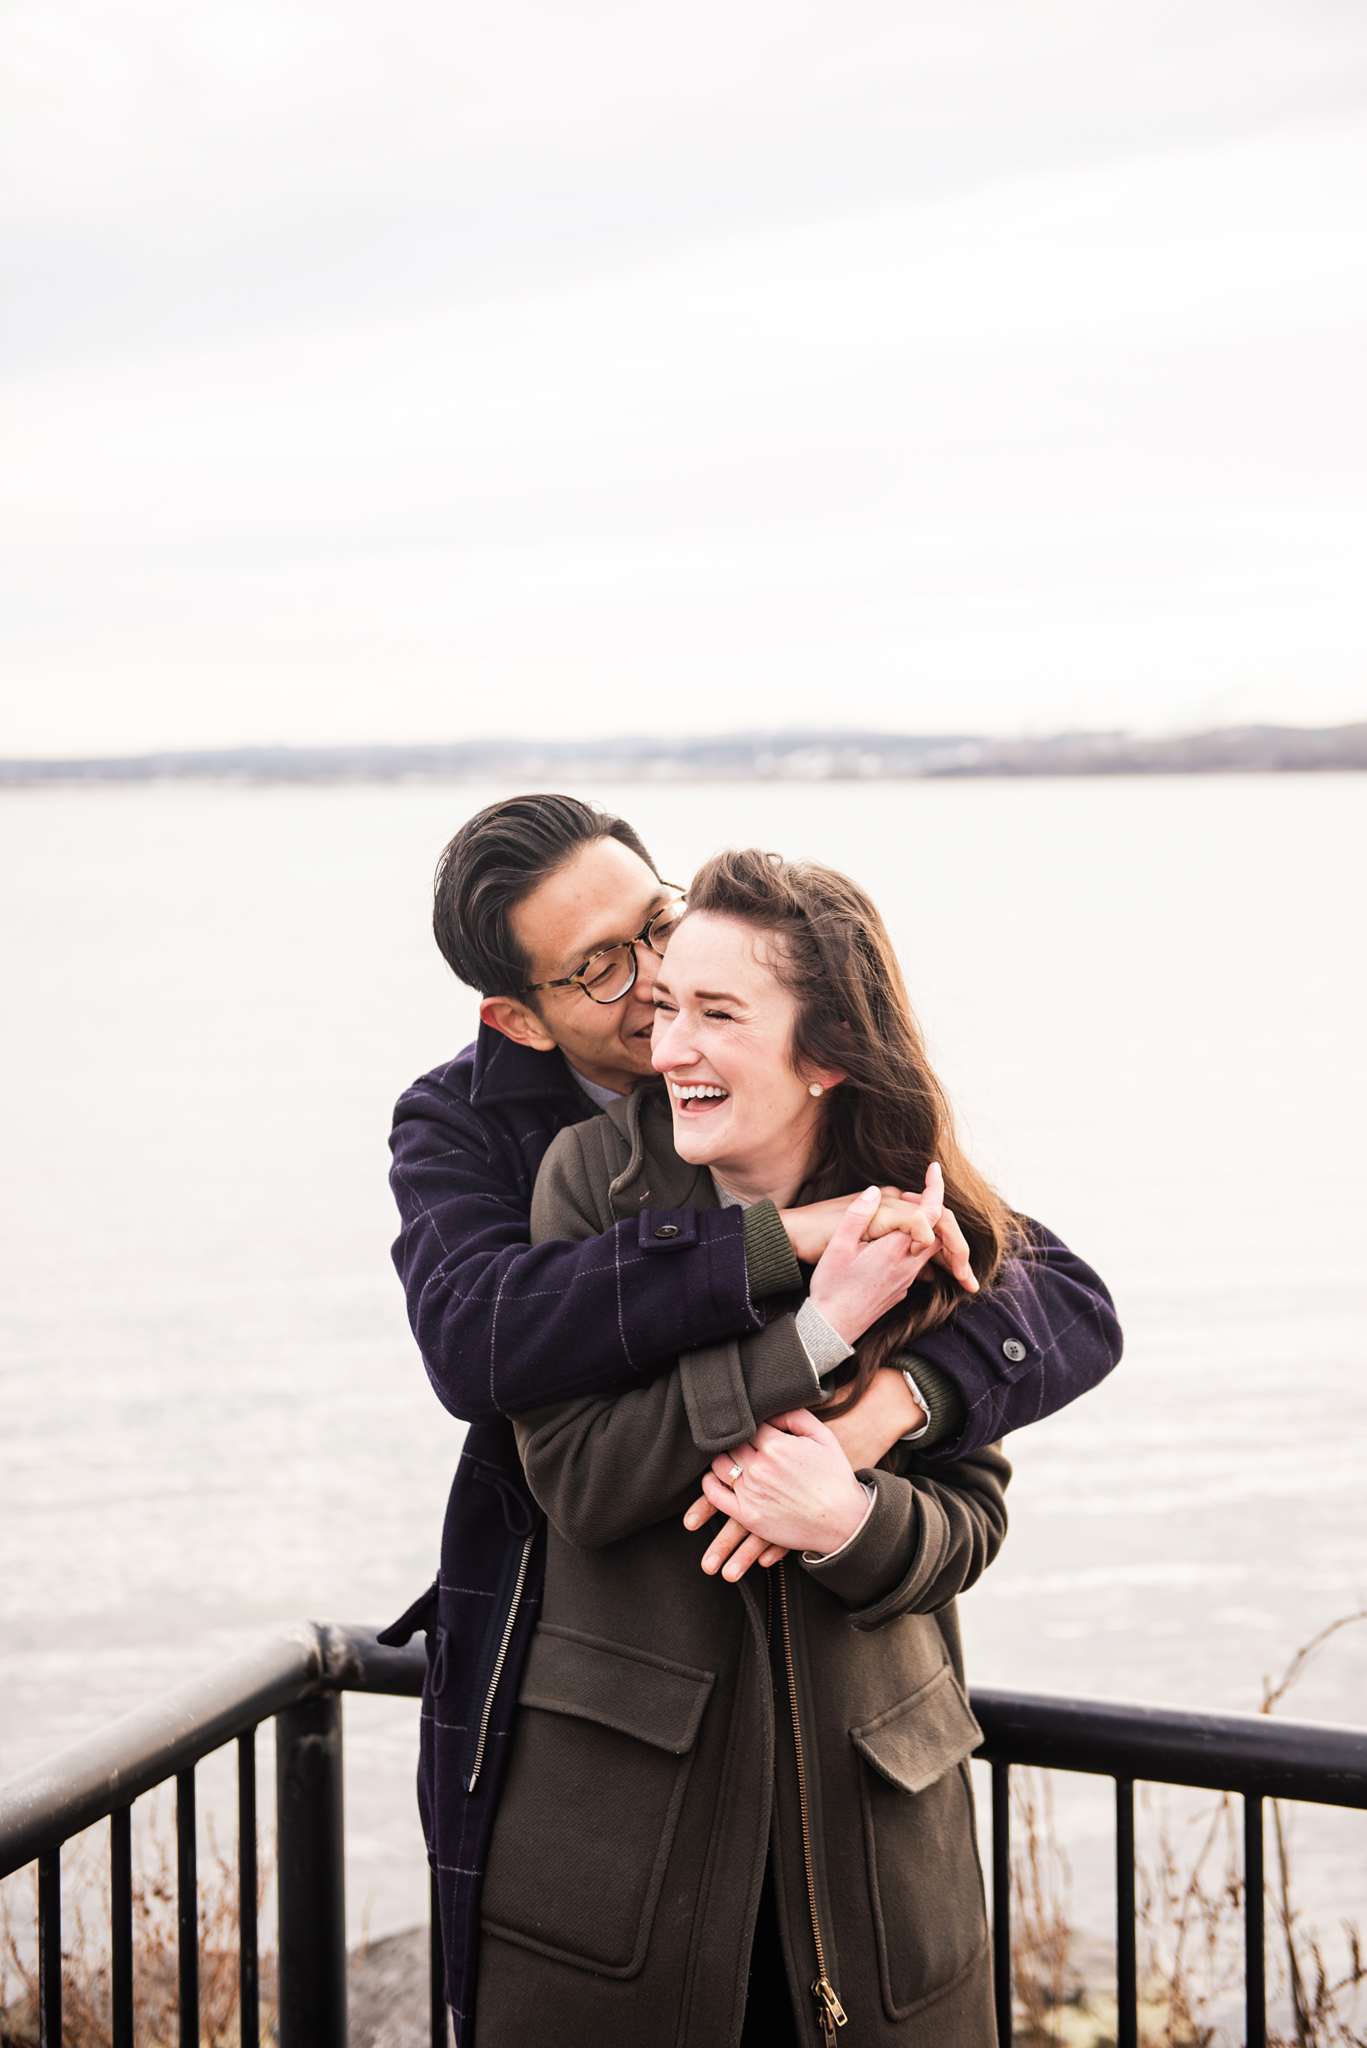 Onondaga_Lake_Park_Syracuse_Engagement_Session_JILL_STUDIO_Rochester_NY_Photographer_DSC_3304.jpg